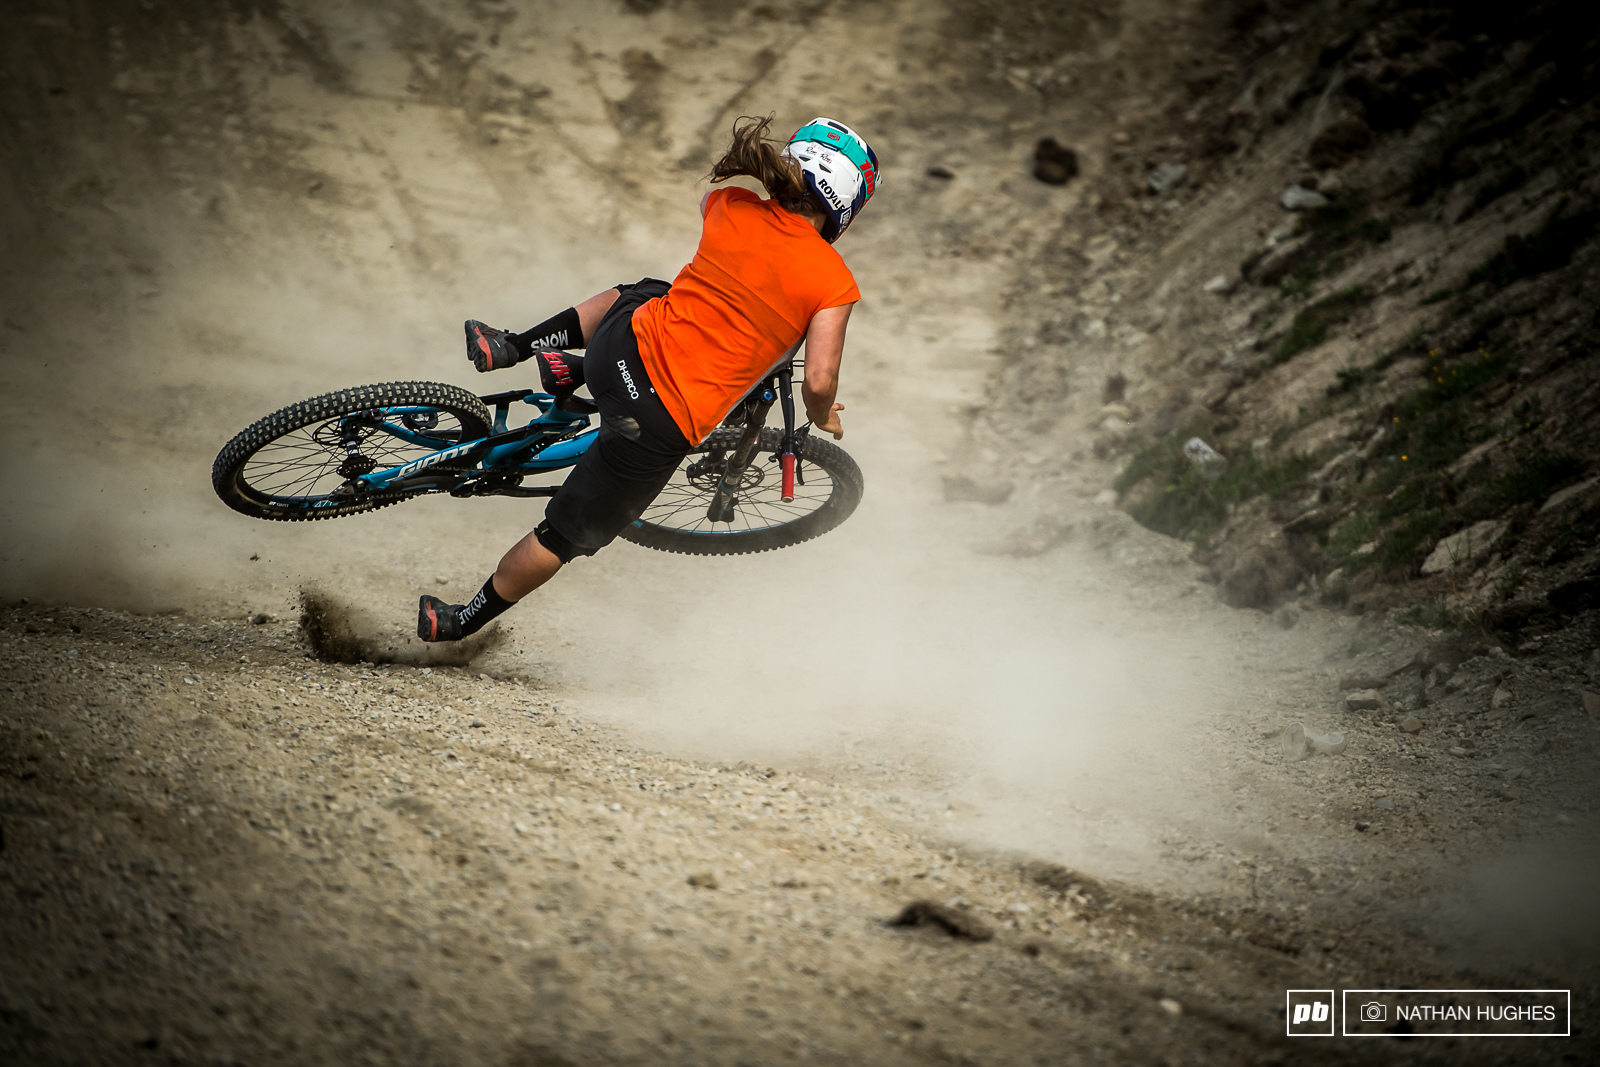 Some of the huge crashes on the unforgiving jumps were tough to watch.